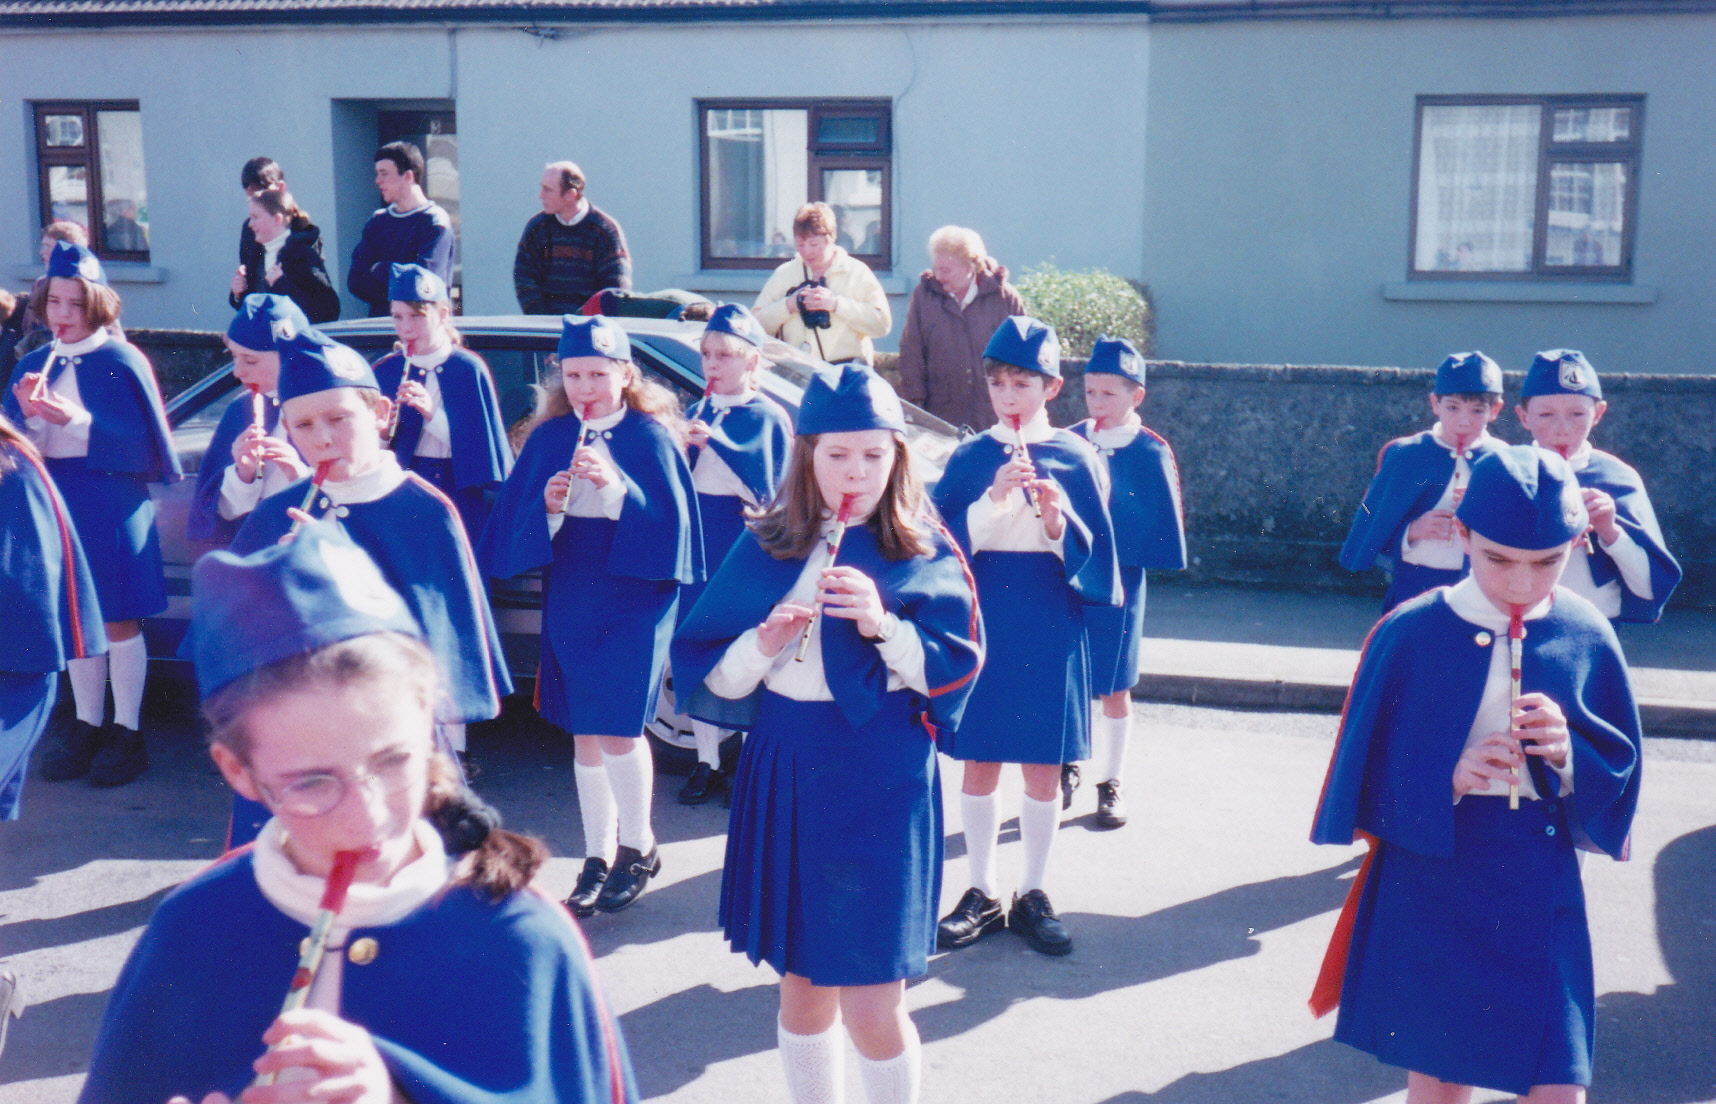 archive - parade school band 1.jpg